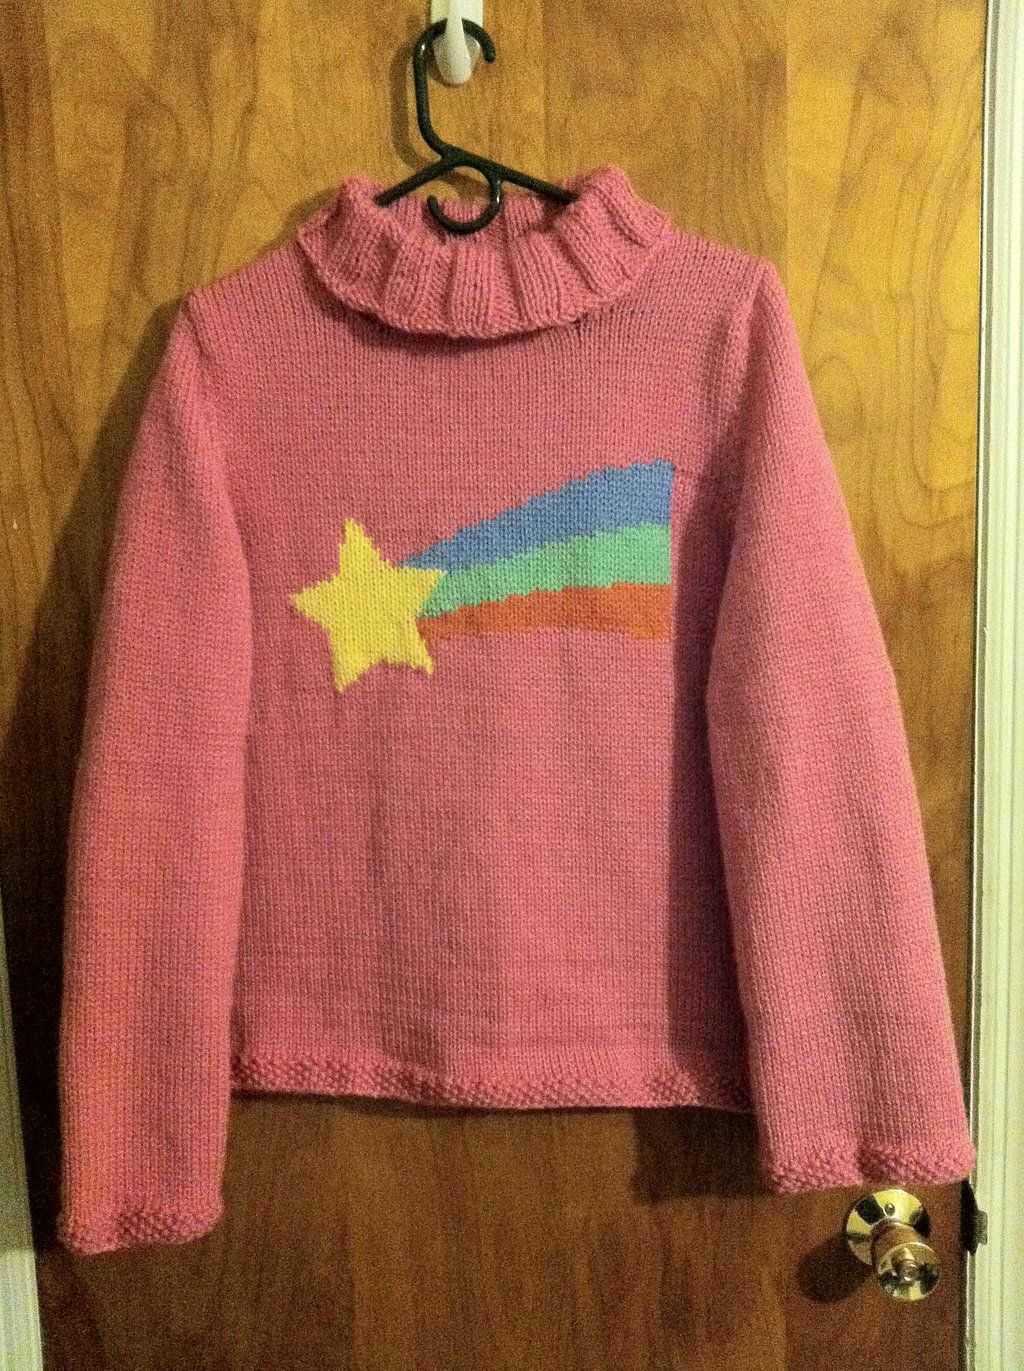 Cosplay commission.  Mabel Pines Sweater by playswithstring.deviantart.com on @deviantART